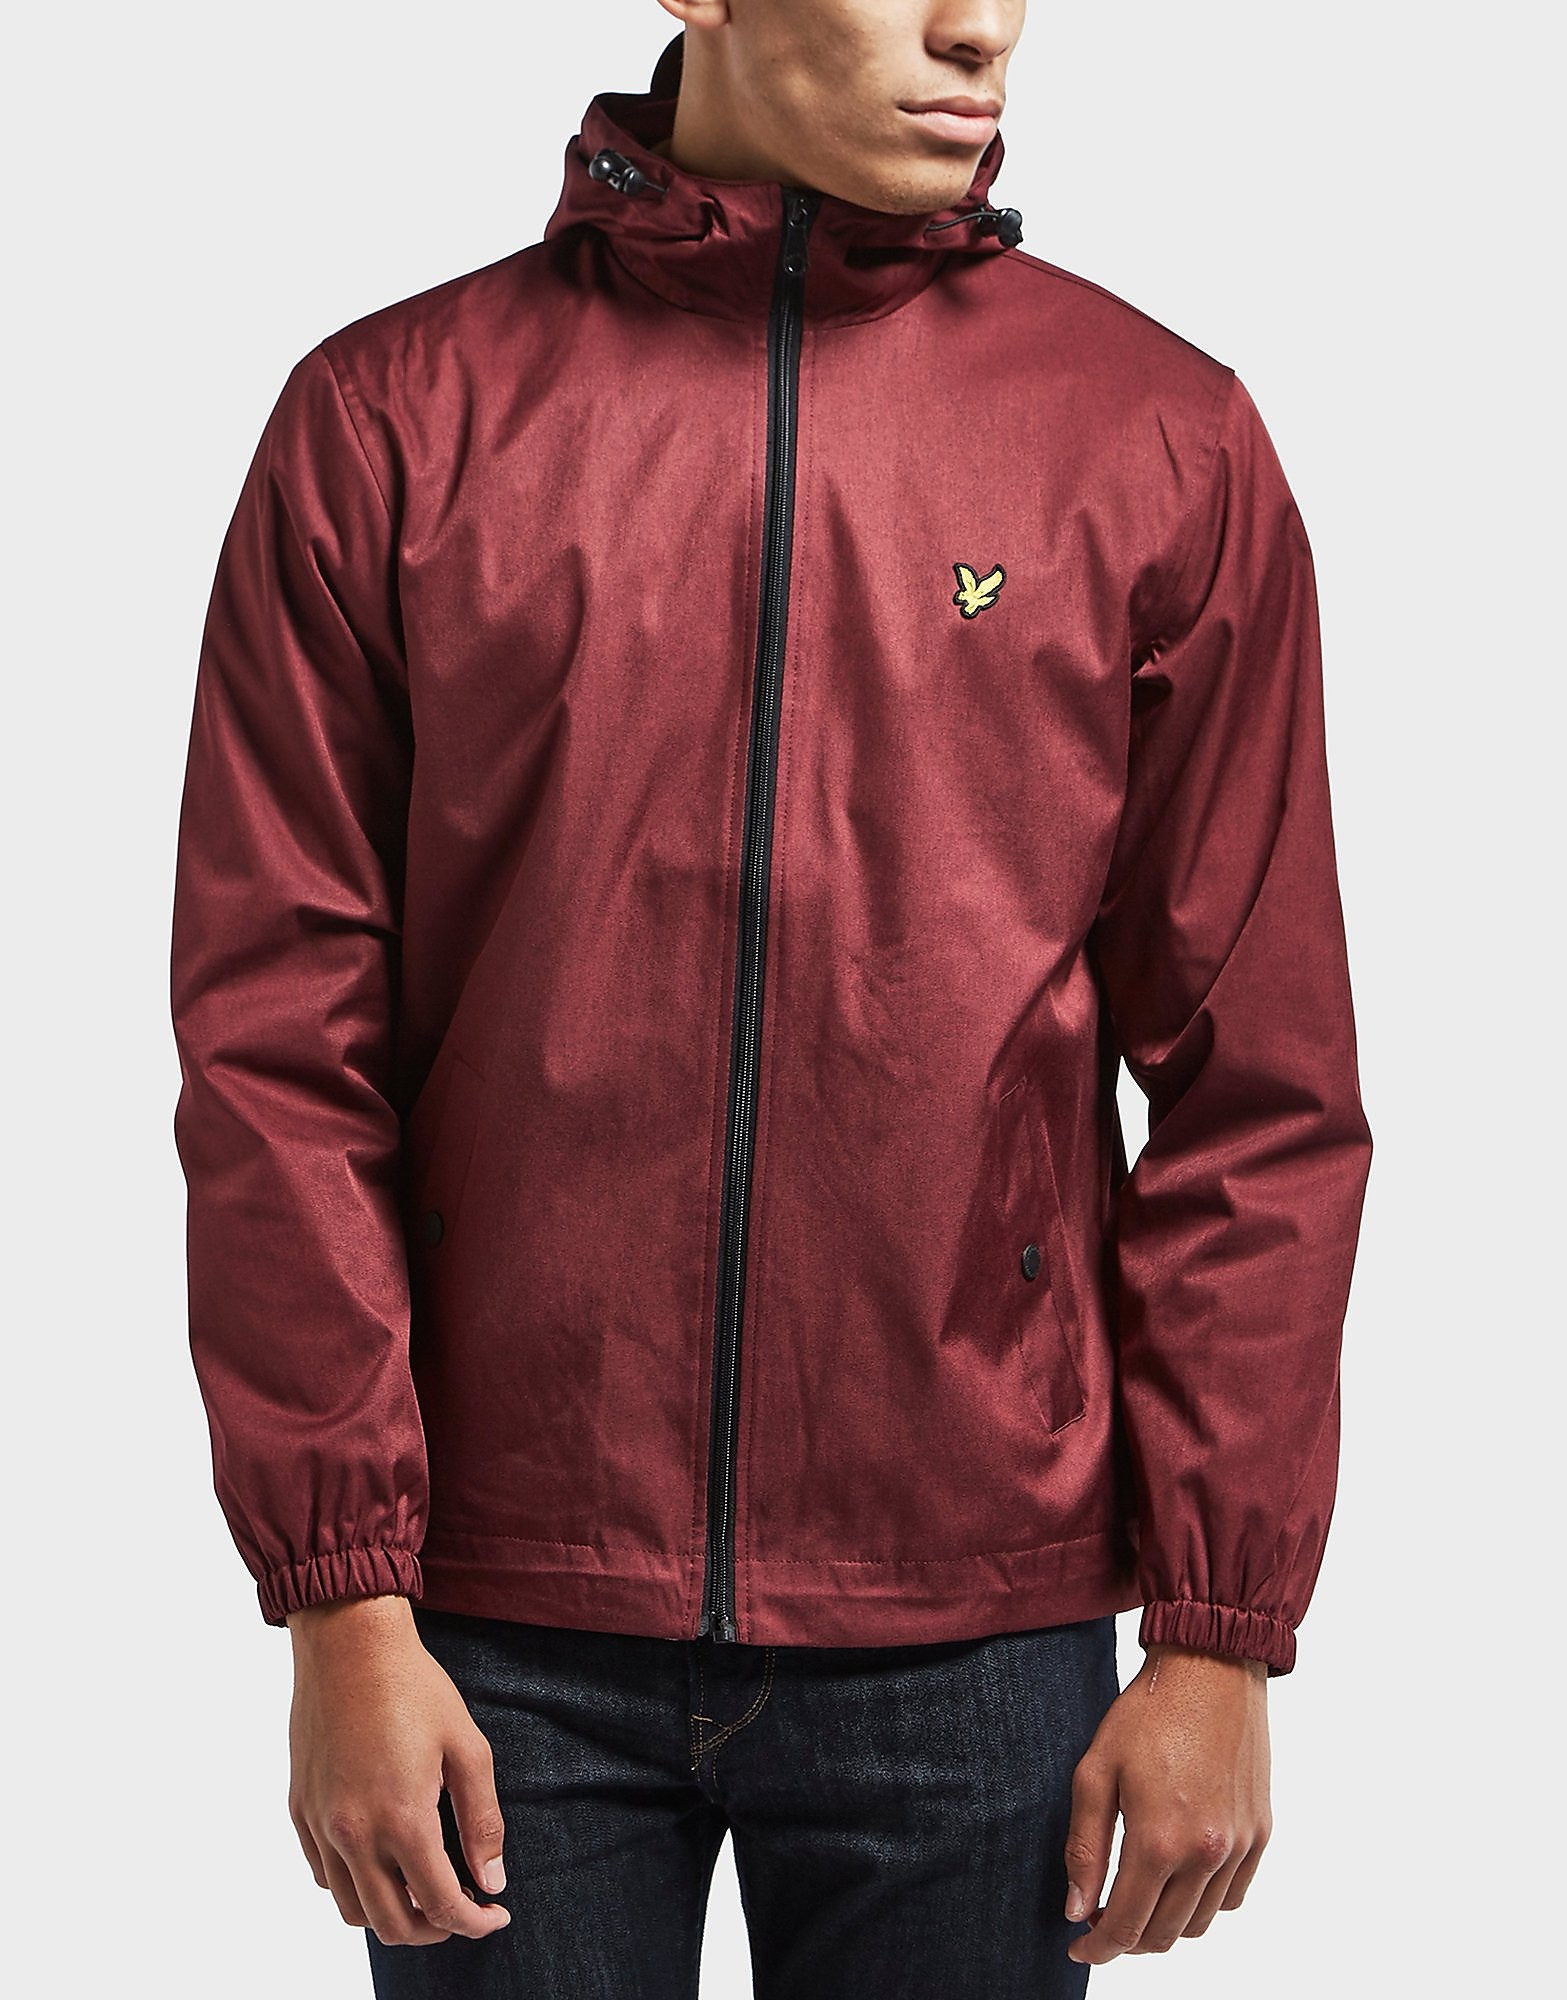 Lyle & Scott Hooded Lightweight Jacket